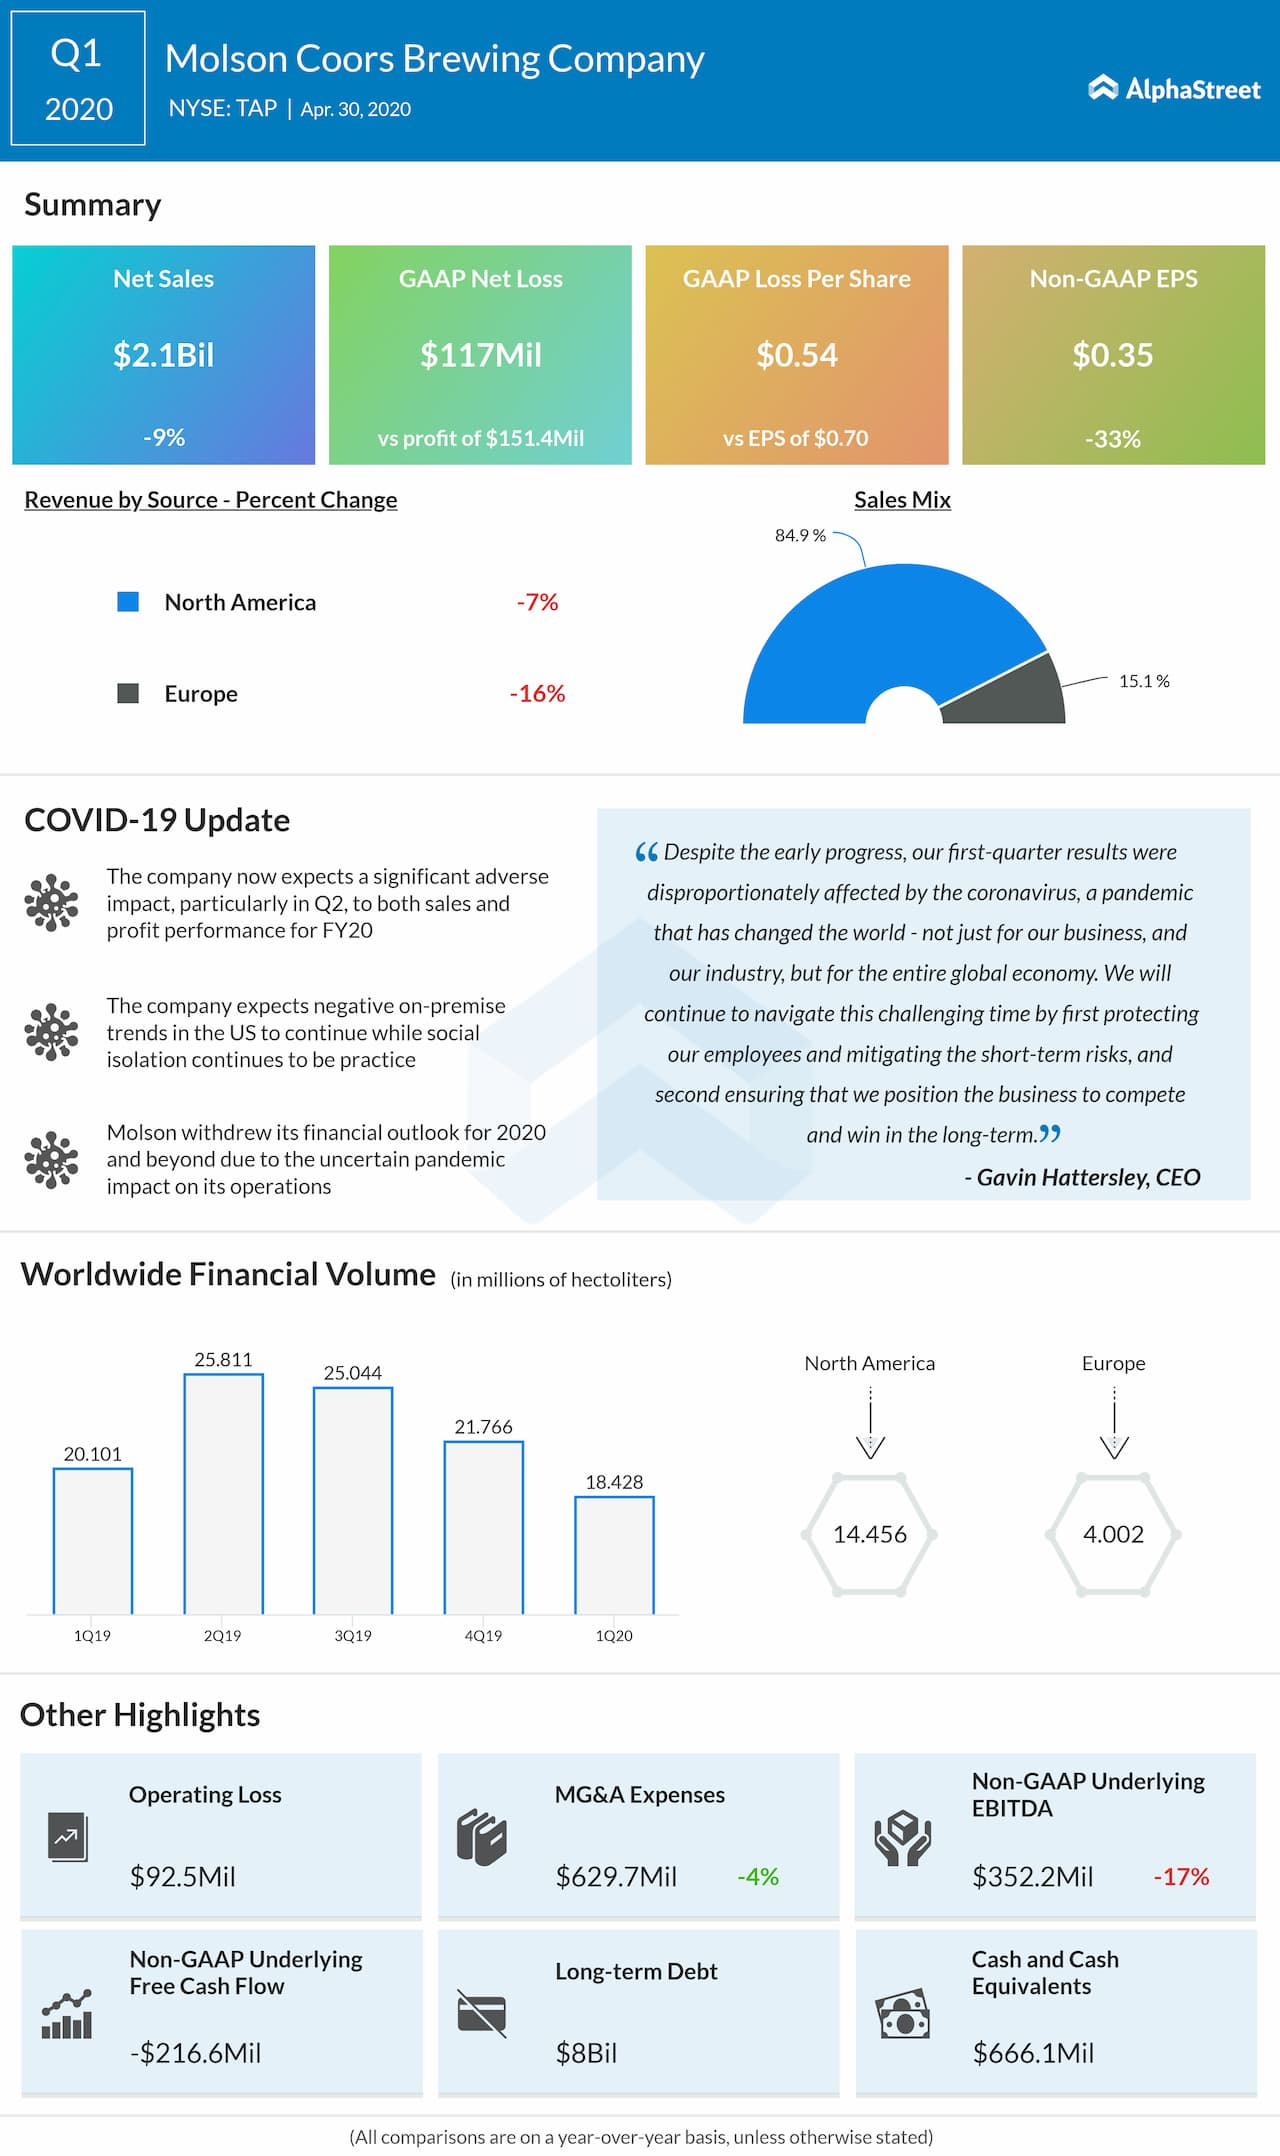 Molson Coors Brewing (TAP) Q1 2020 earnings review